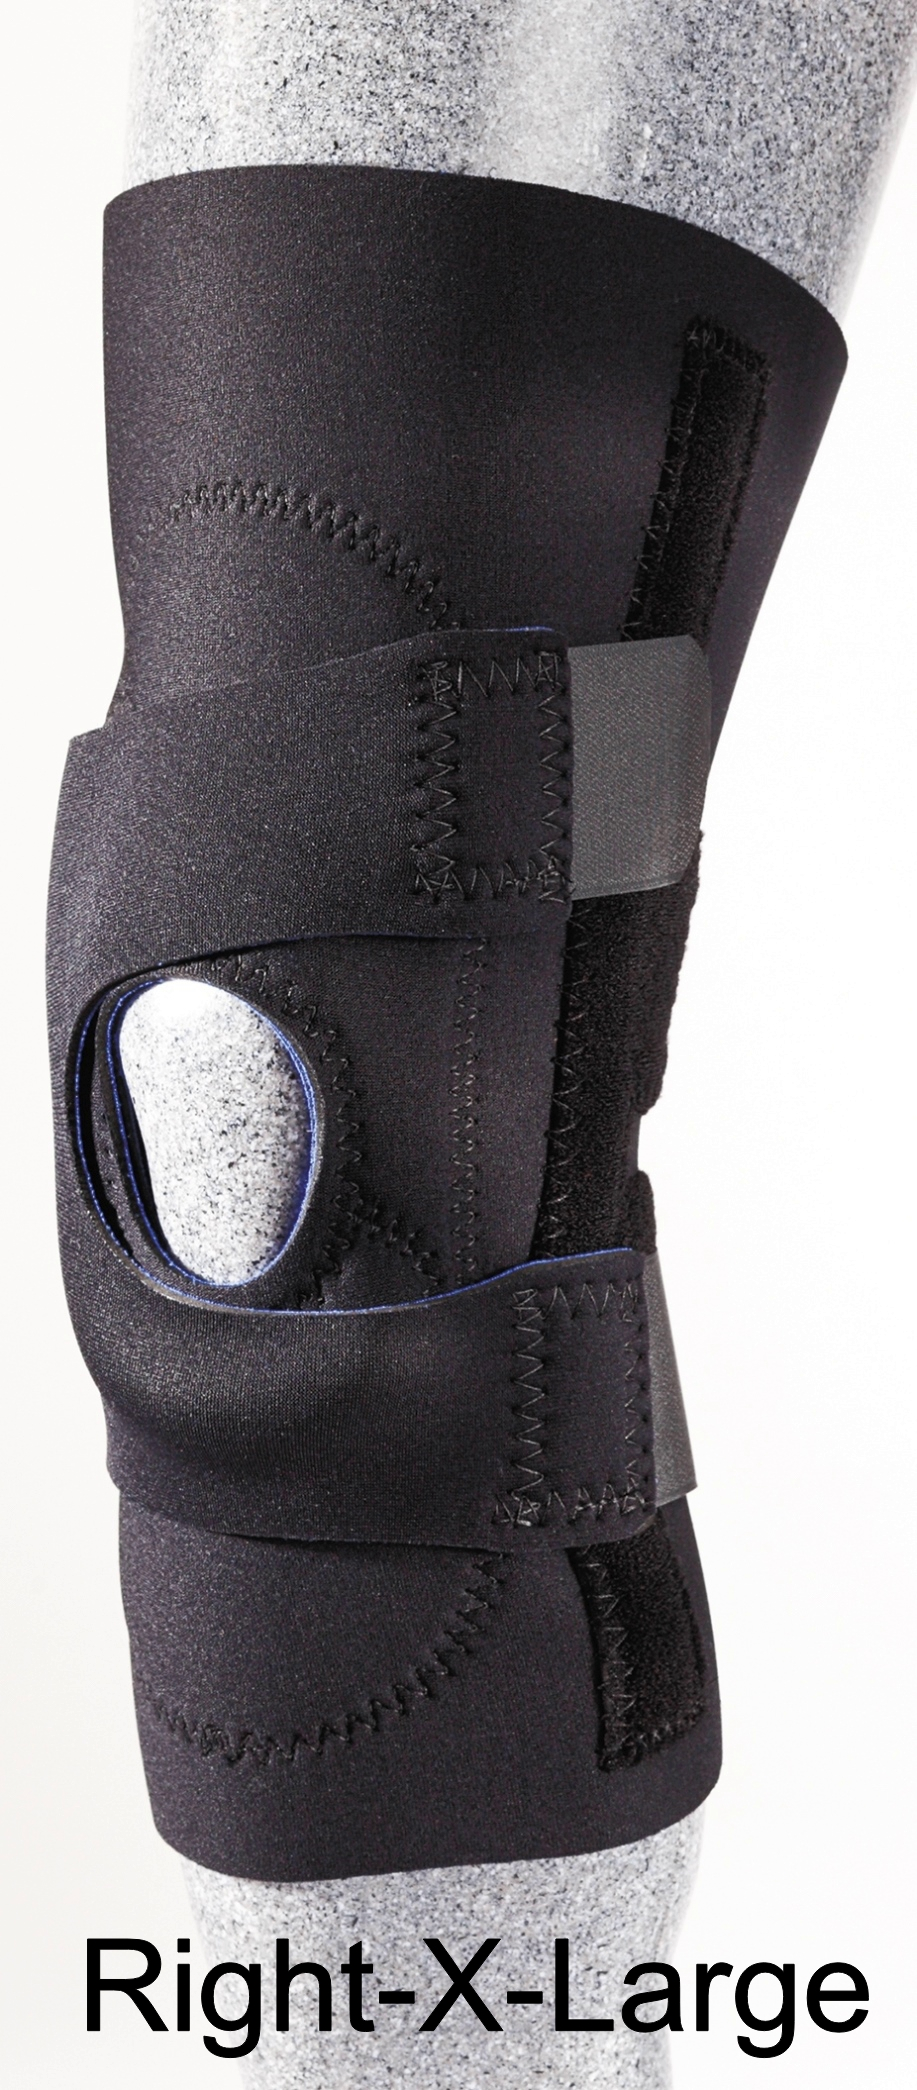 Patellar Stabilizer (J-Brace) with Pull Straps - Right - X-Large - (16